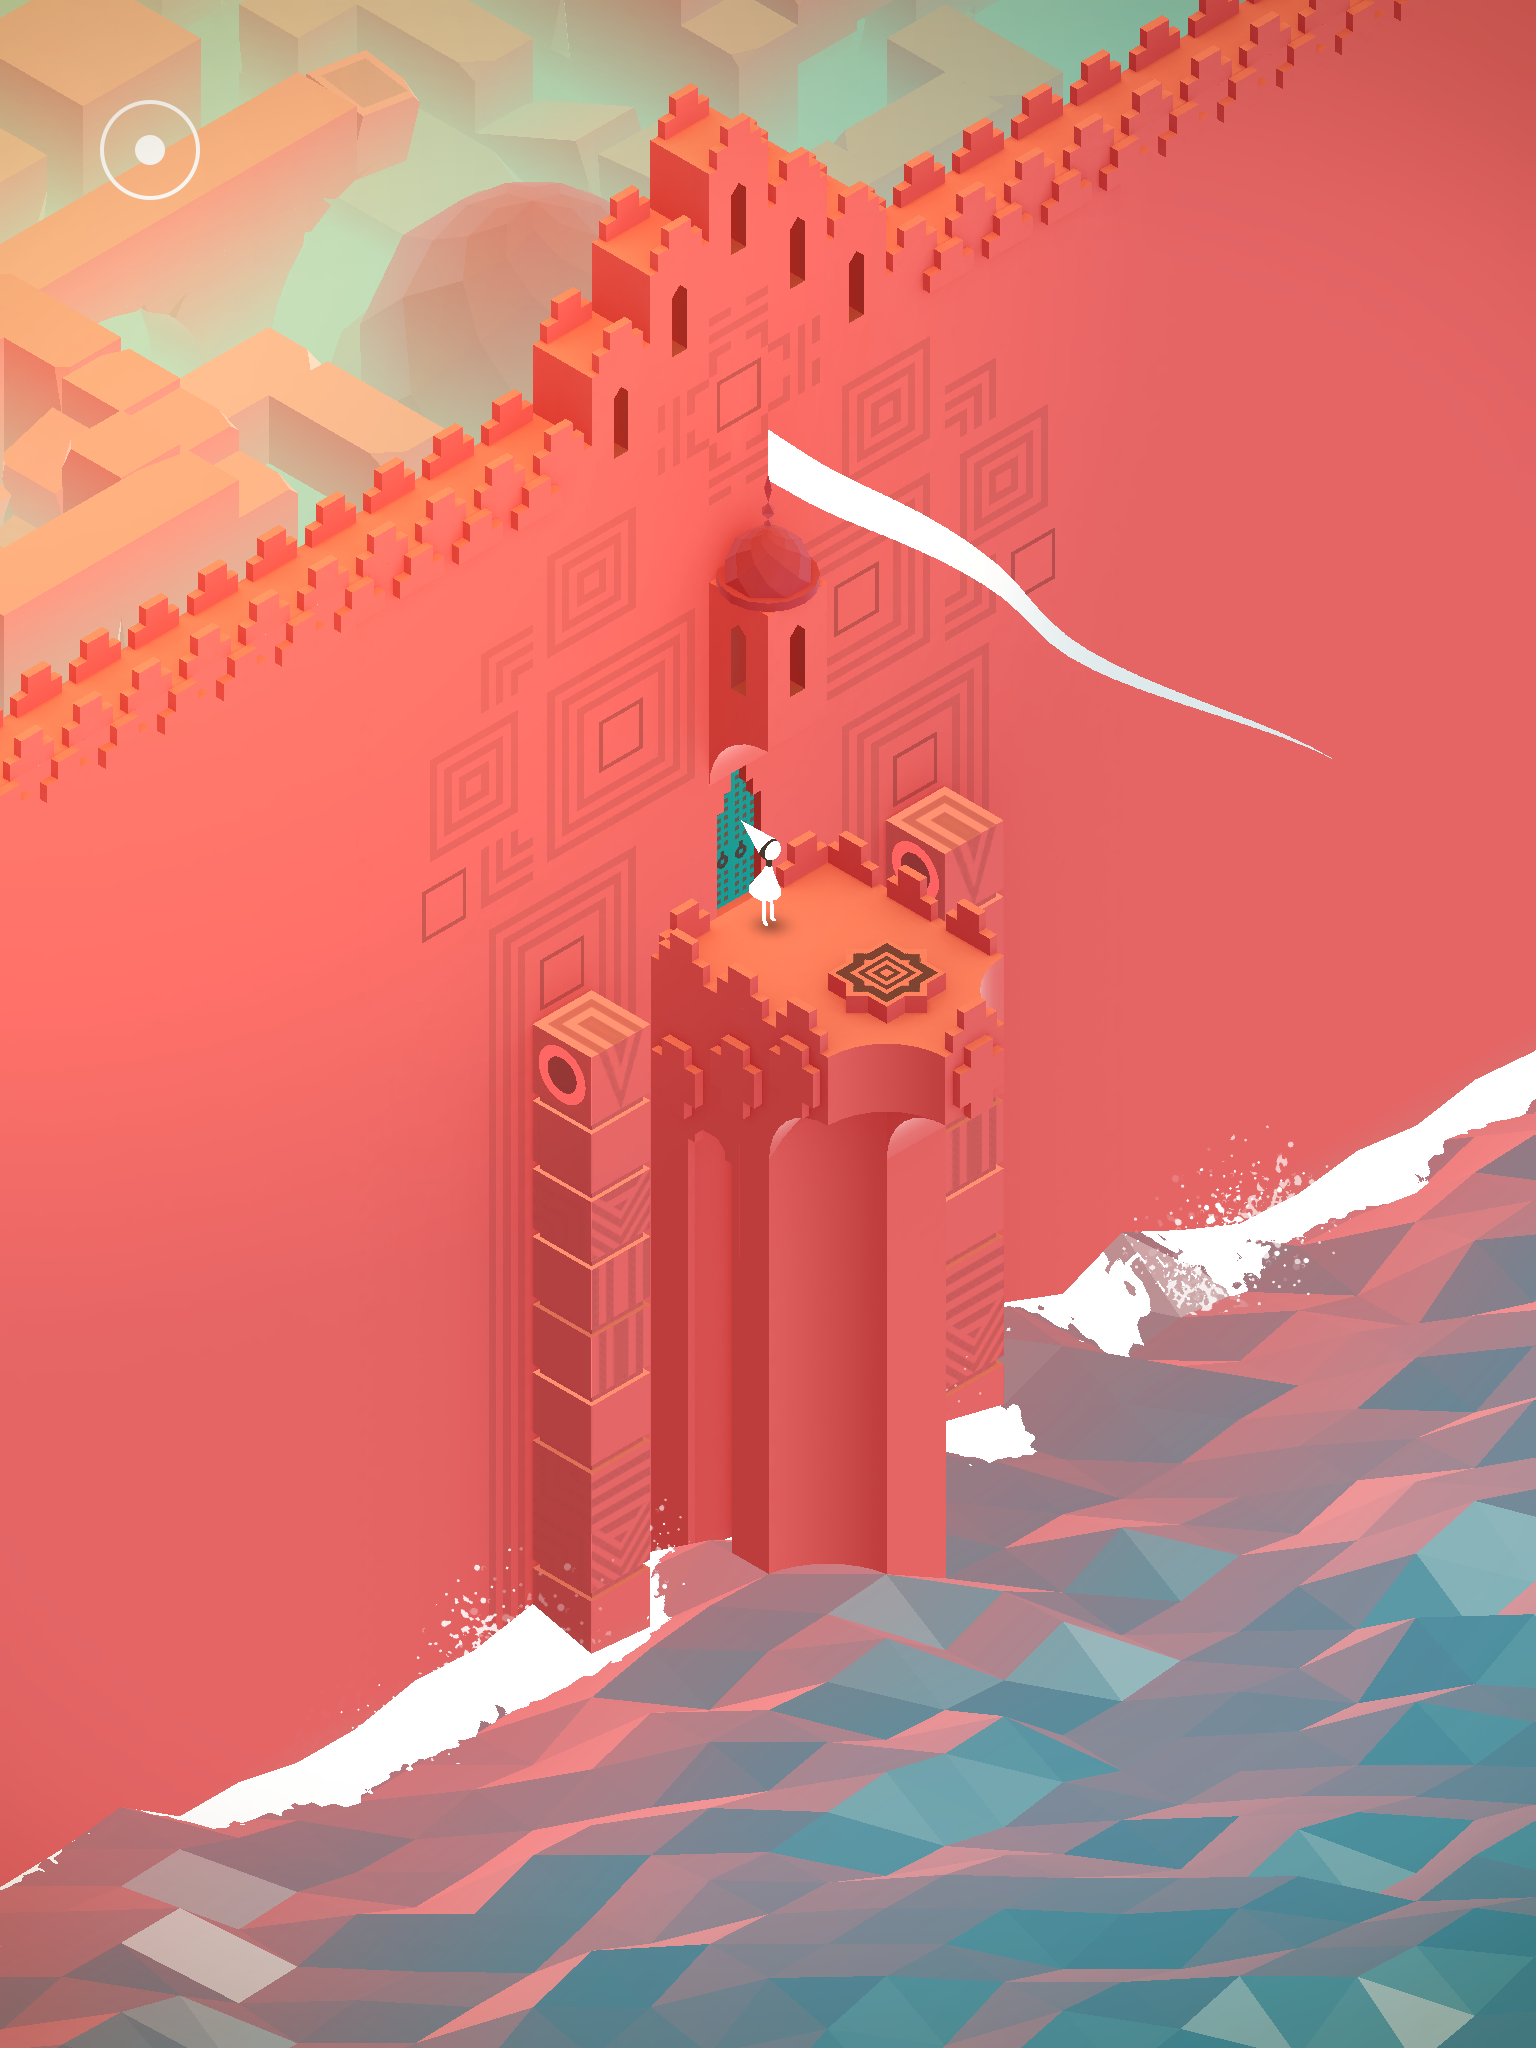 Isometric / flat perspective, cell shading, bright colors, low-poly, water visualization